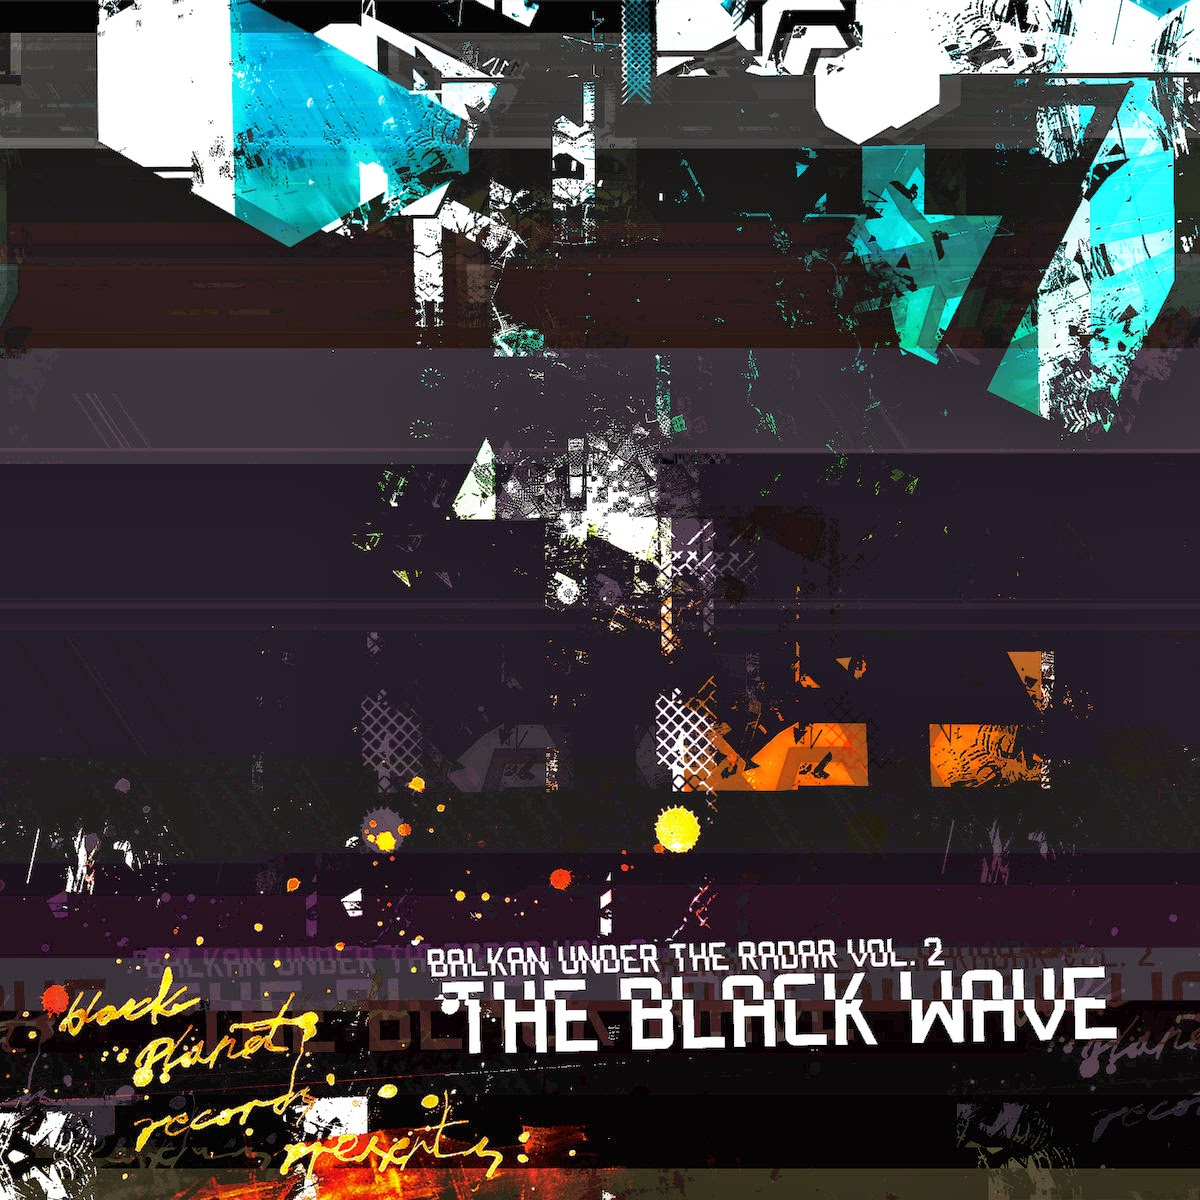 the black wave compilation